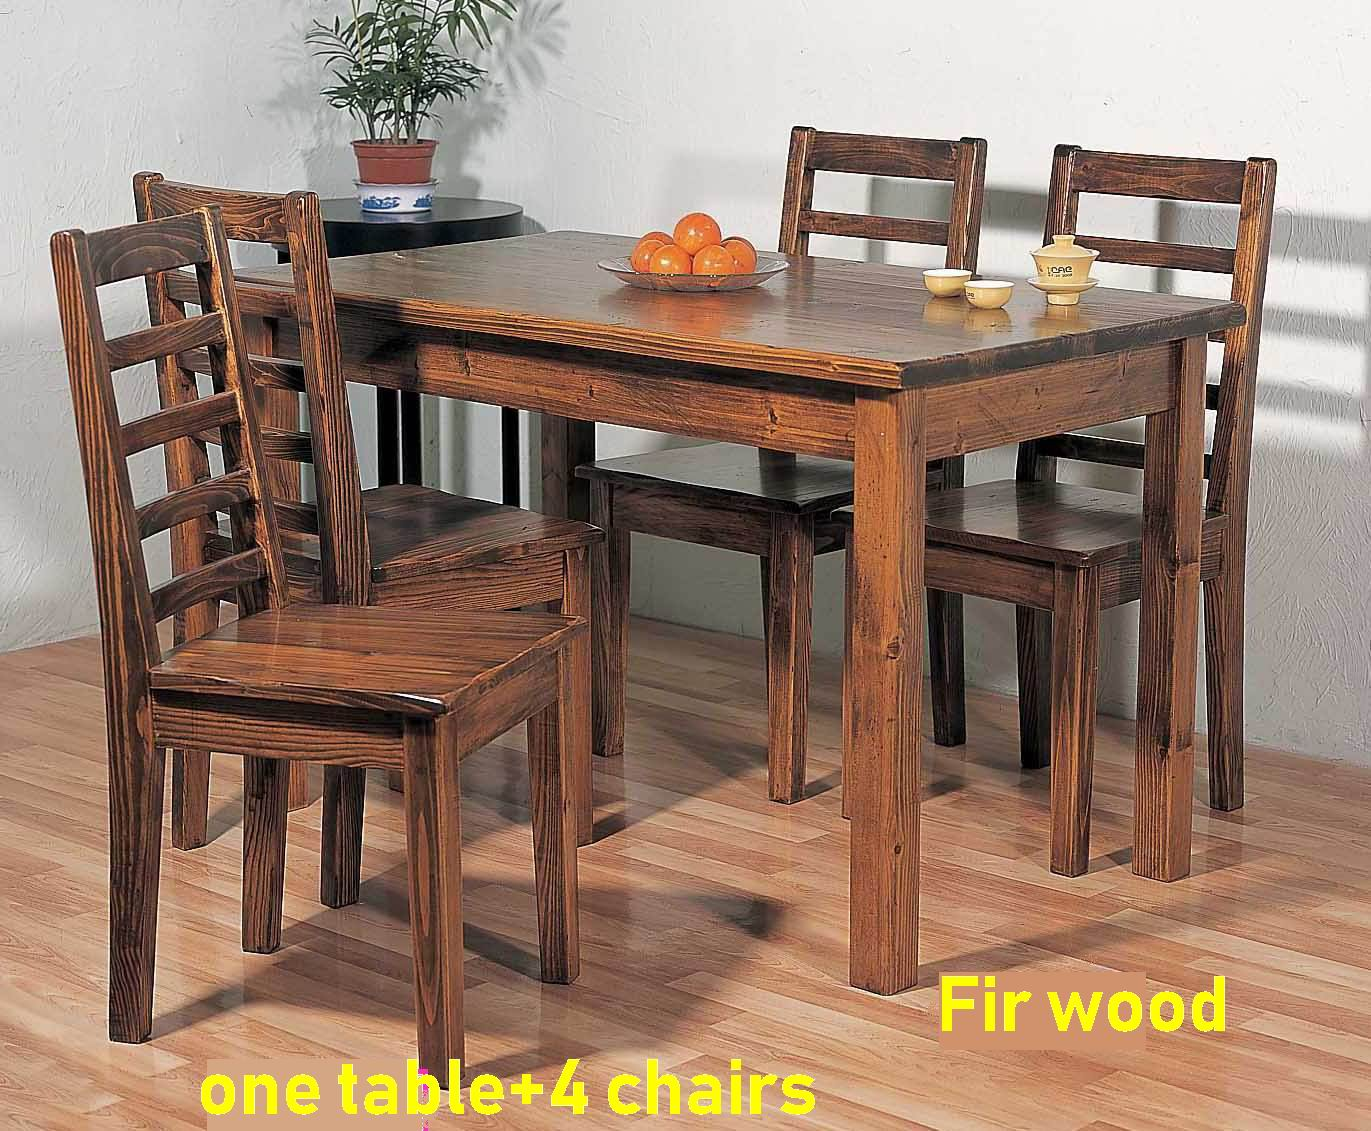 Solid Fir Wood Dining Room one Table with 4 Side Chairs simple combination